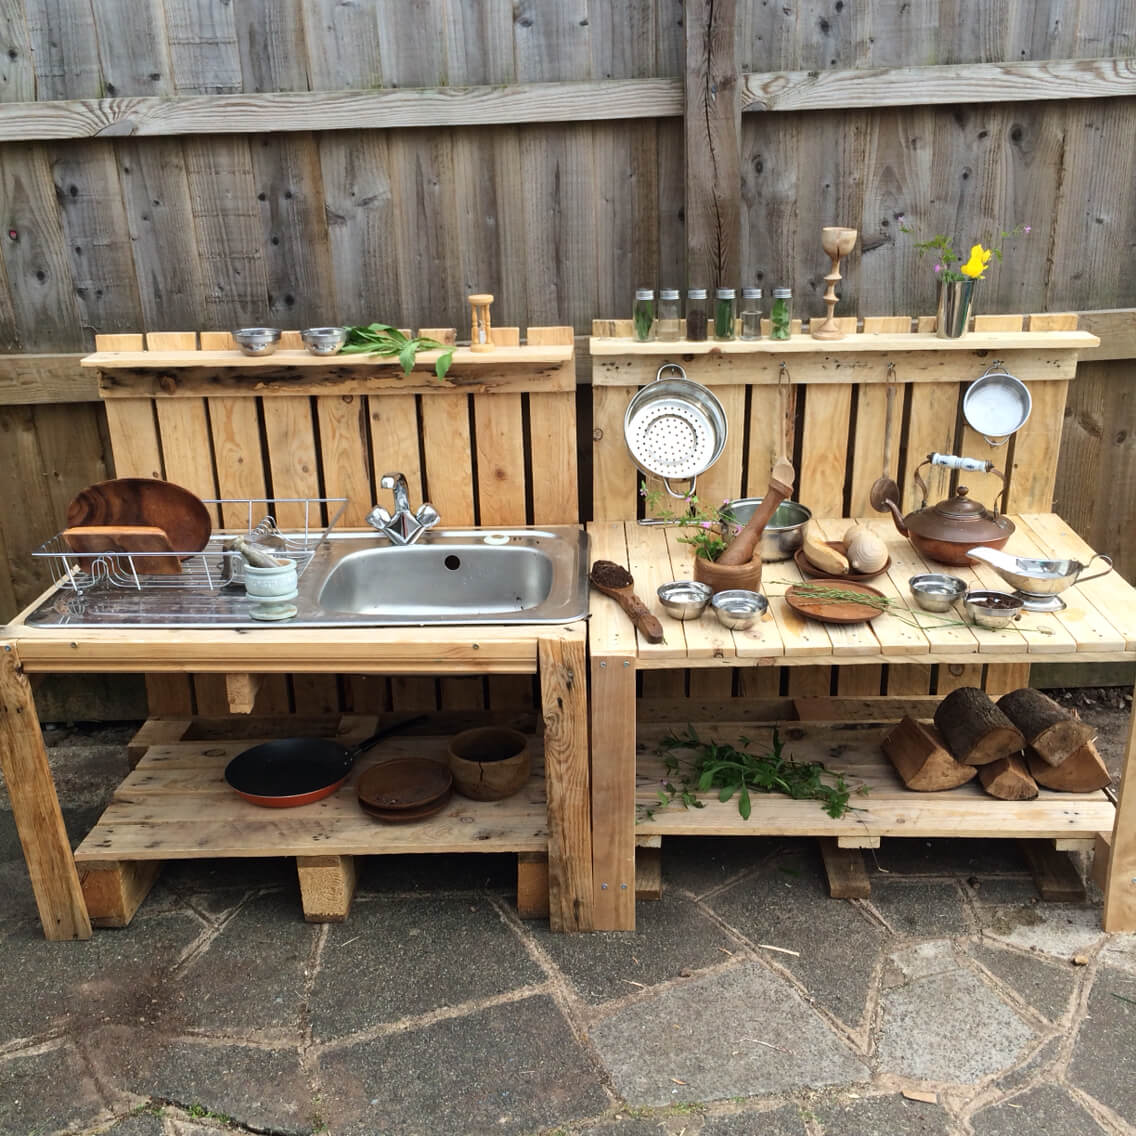 DIY Wood Pallet Sink and Prep Station